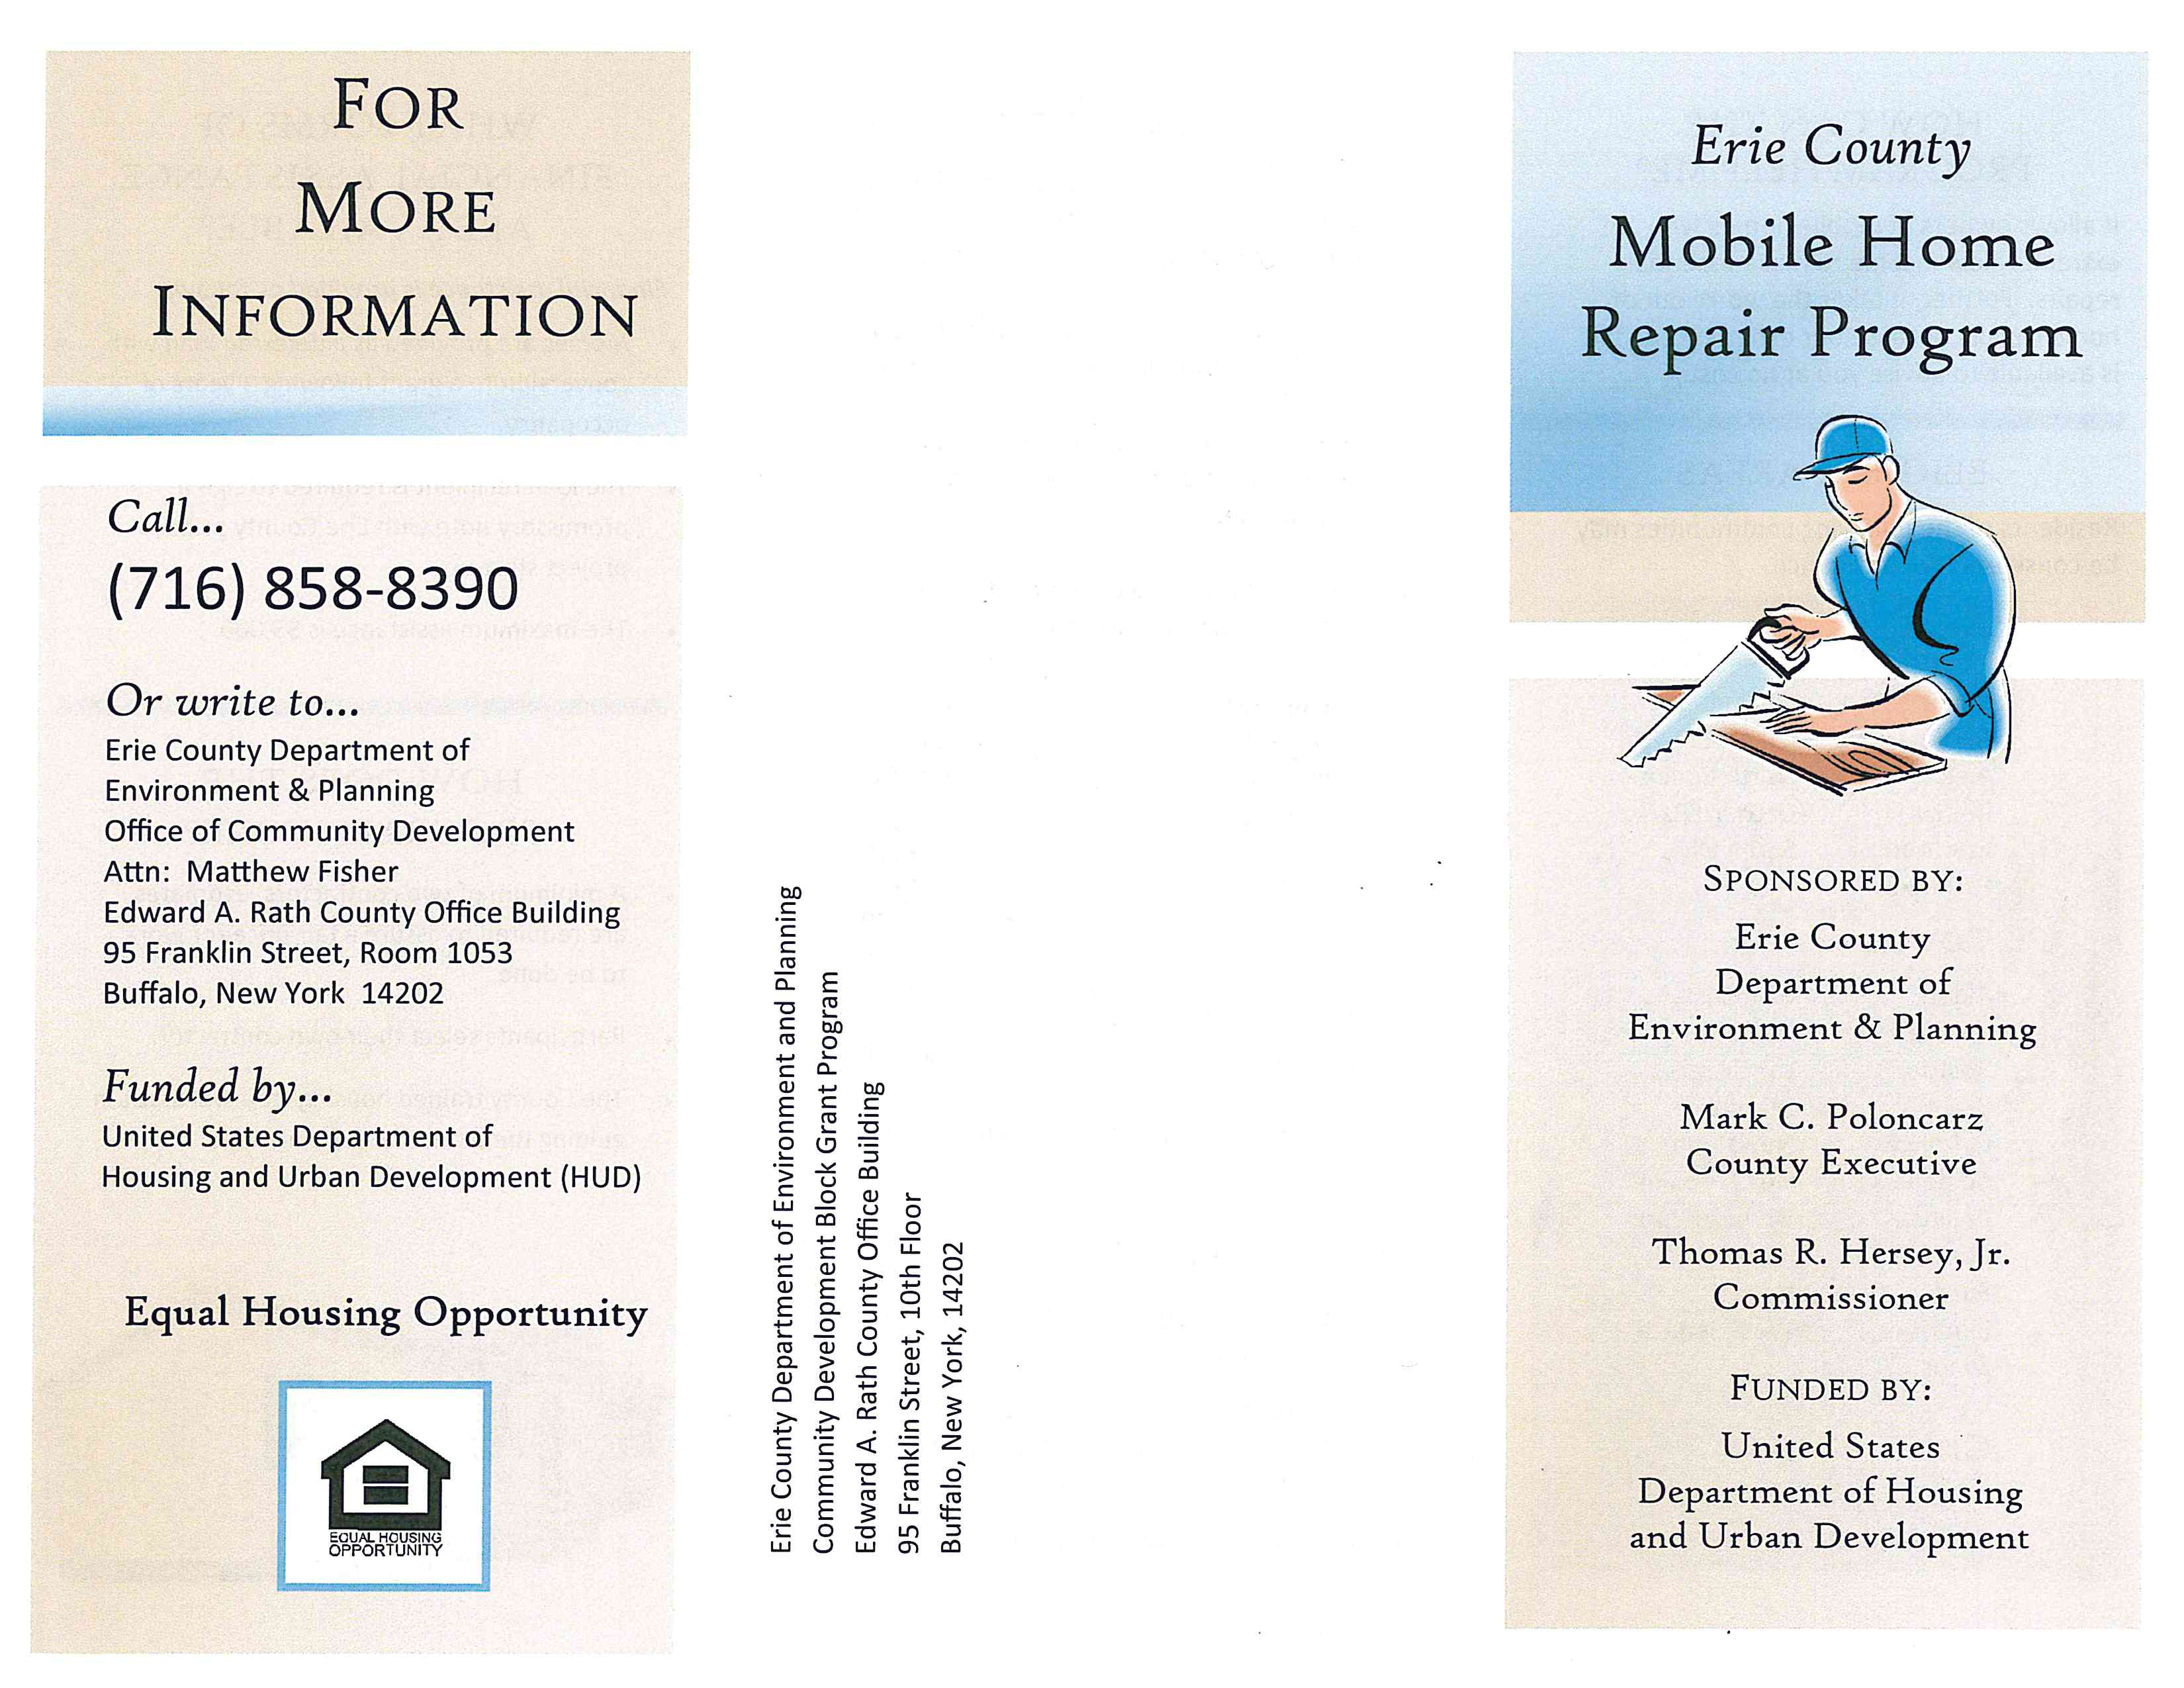 Mobile Home Repair Program pg 2